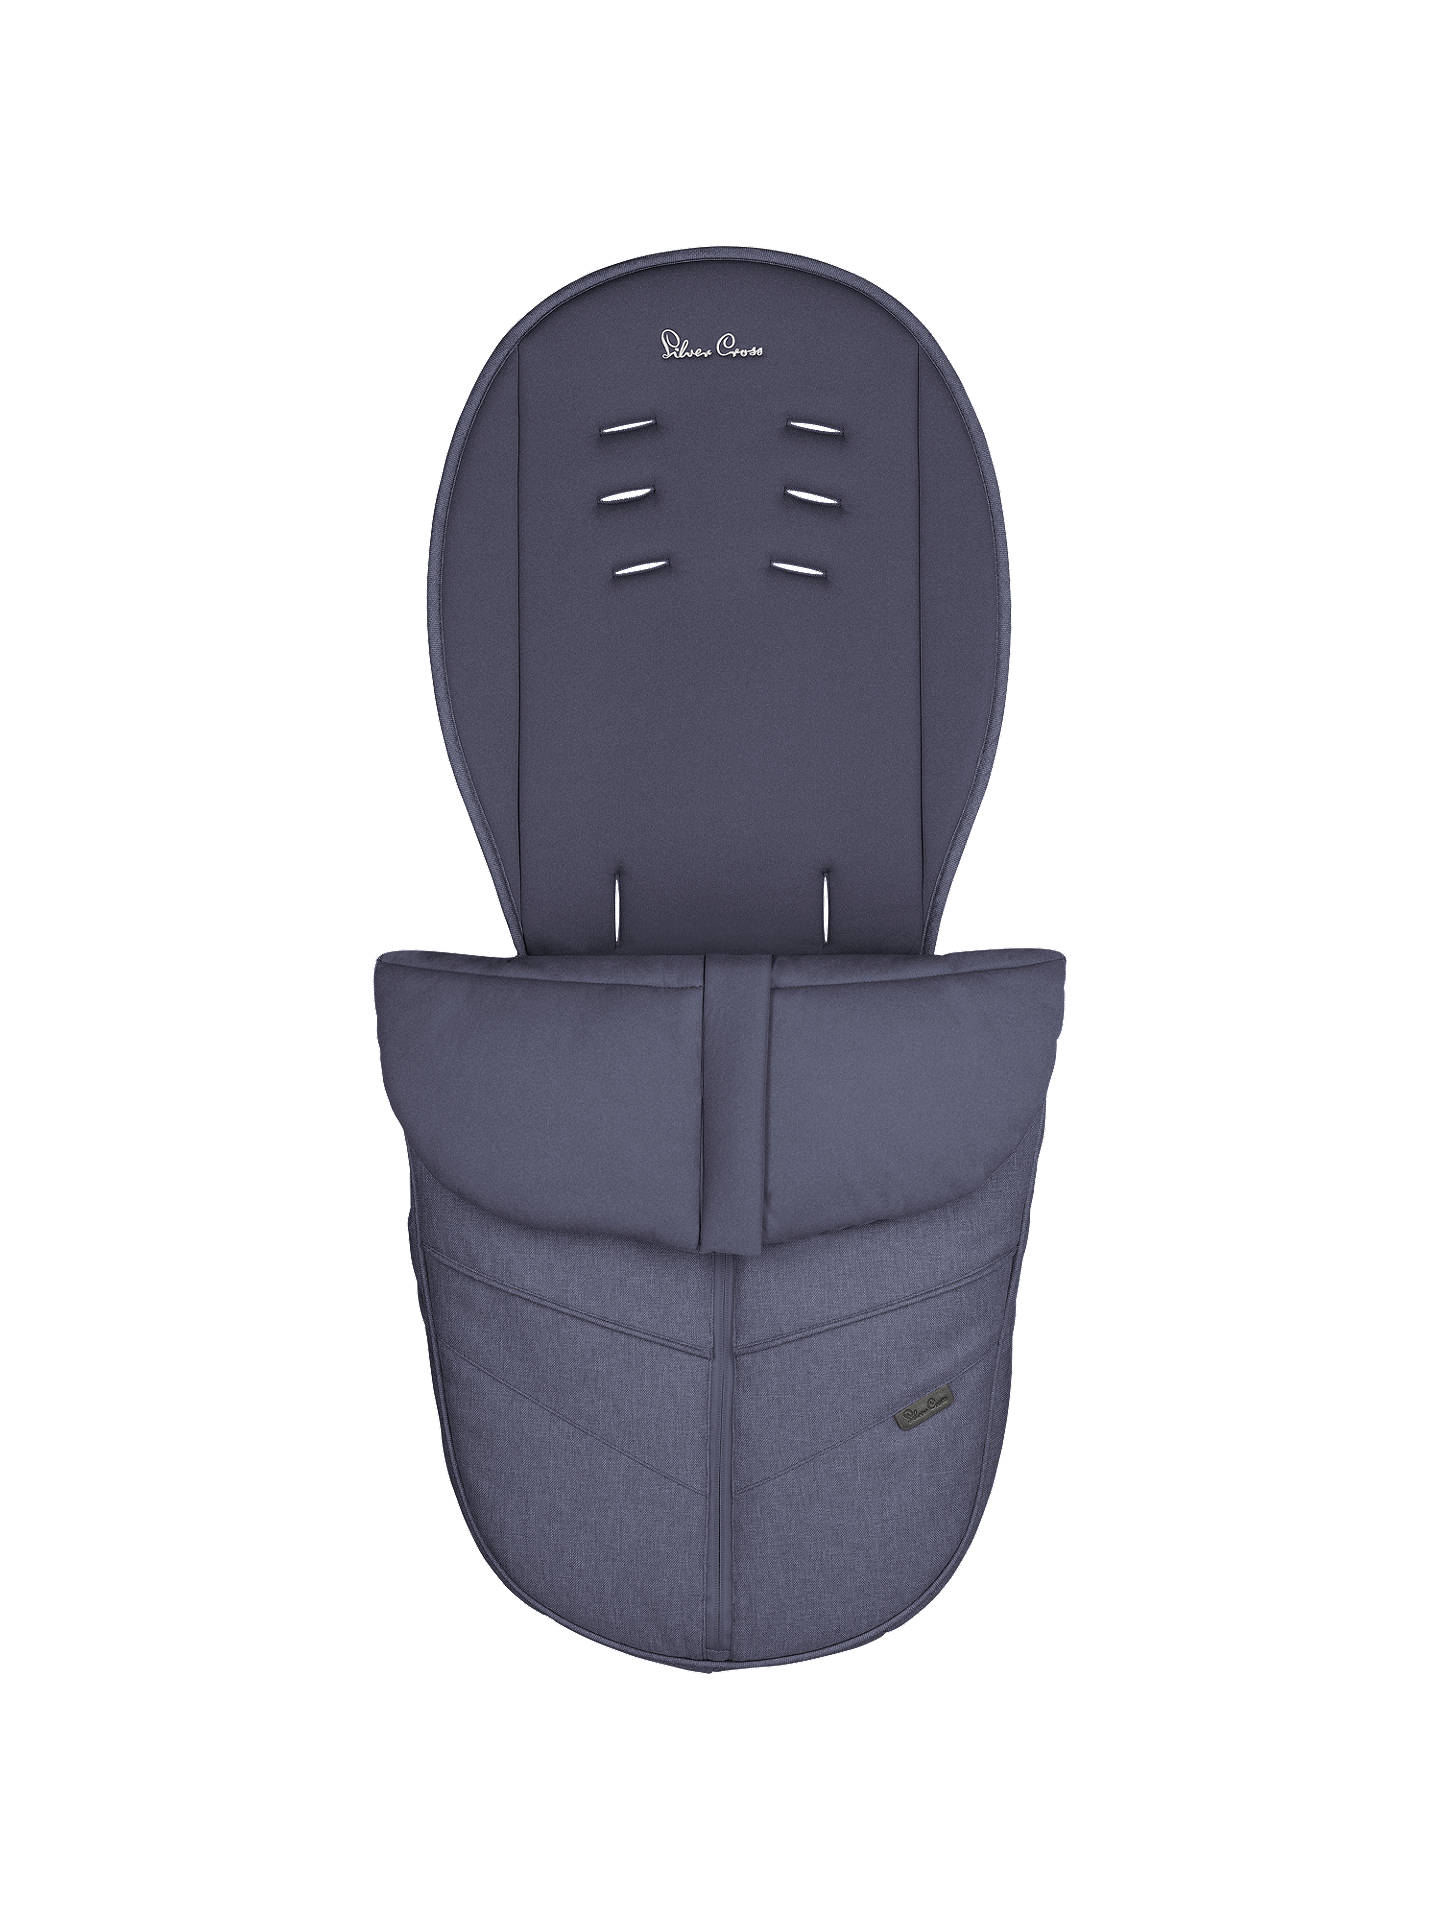 BuySilver Cross Wayfarer/Pioneer Footmuff, Midnlight Blue Online at johnlewis.com